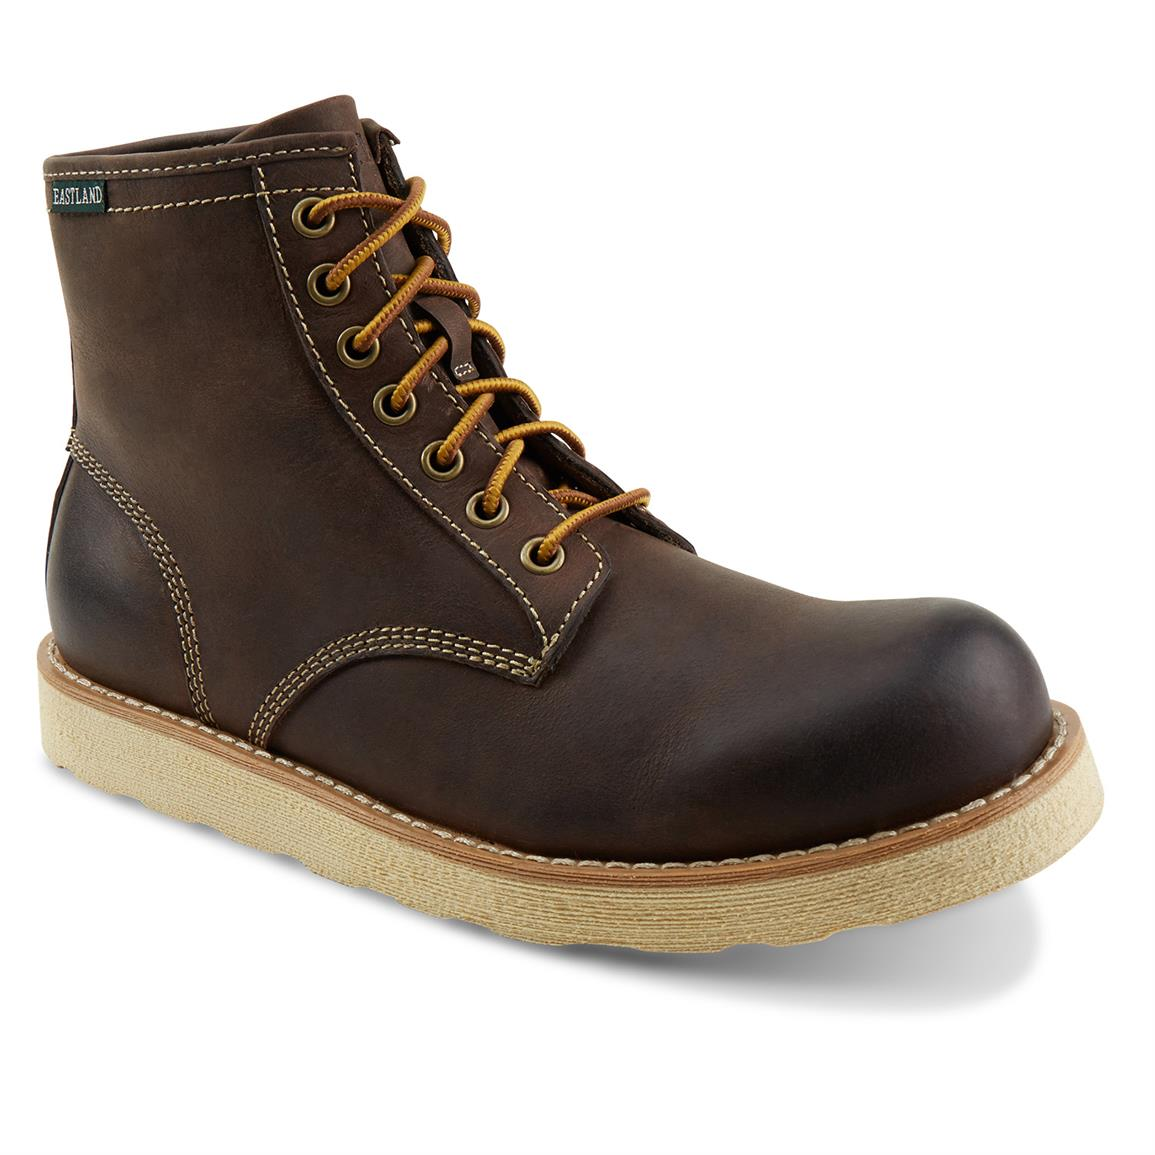 Eastland Barron Boots, Dark Brown